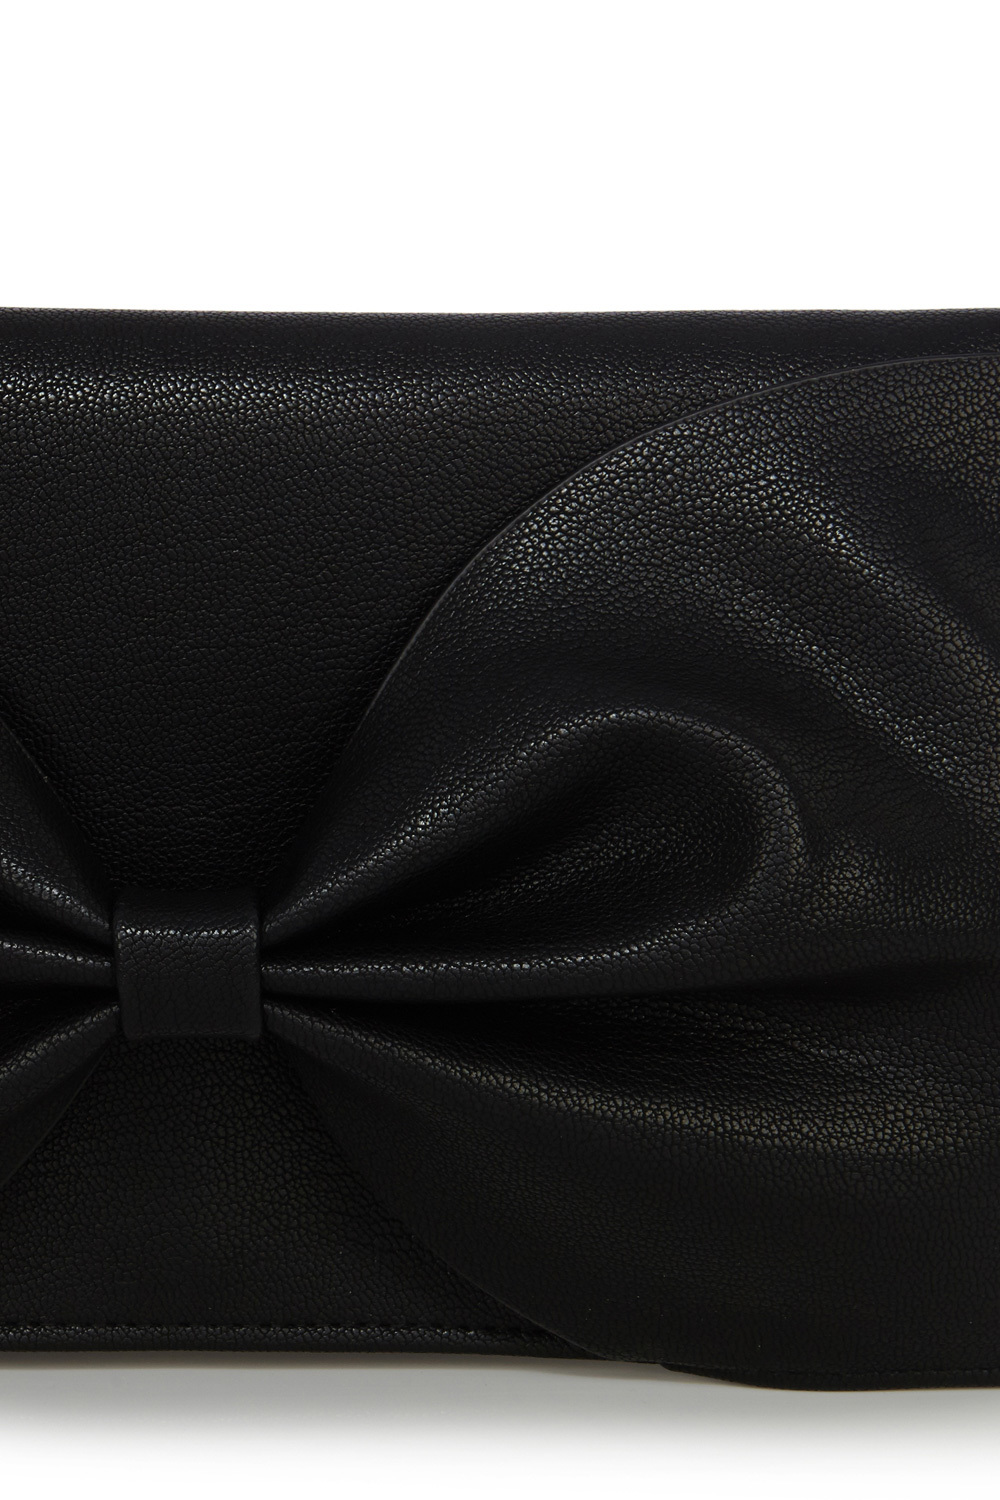 Bow Bag Clutch - predominant colour: black; occasions: evening, occasion; style: clutch; length: hand carry; size: standard; material: fabric; pattern: plain; finish: plain; season: a/w 2015; wardrobe: event